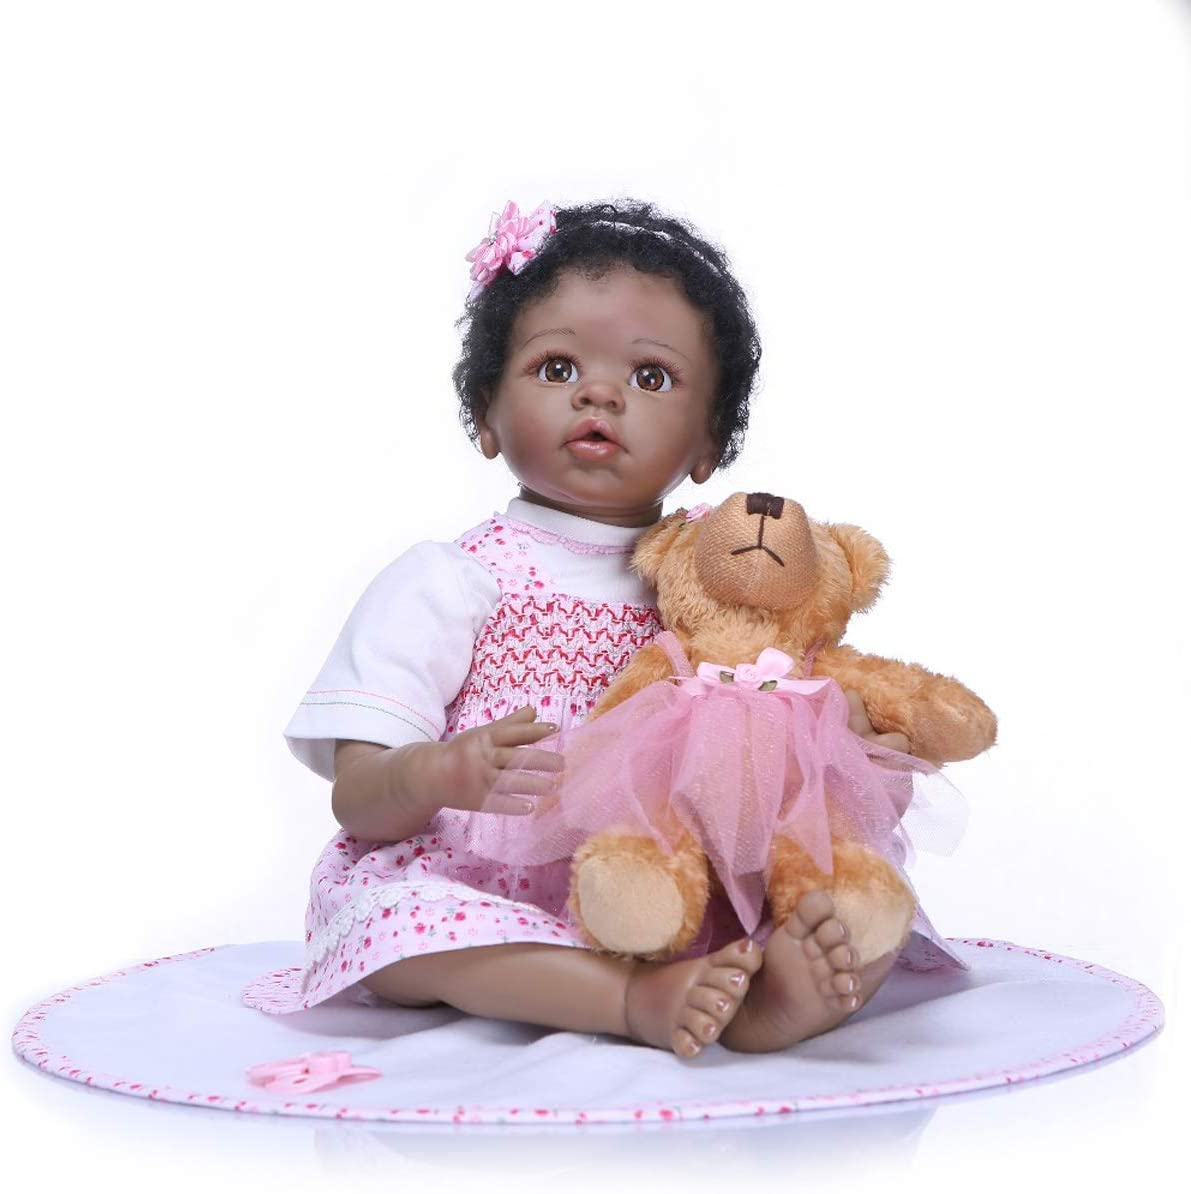 TERABITHIA 22inch Silicone Vinyl Free Sale SALE% OFF shipping on posting reviews Black Baby Reborn 55cm Ali Doll